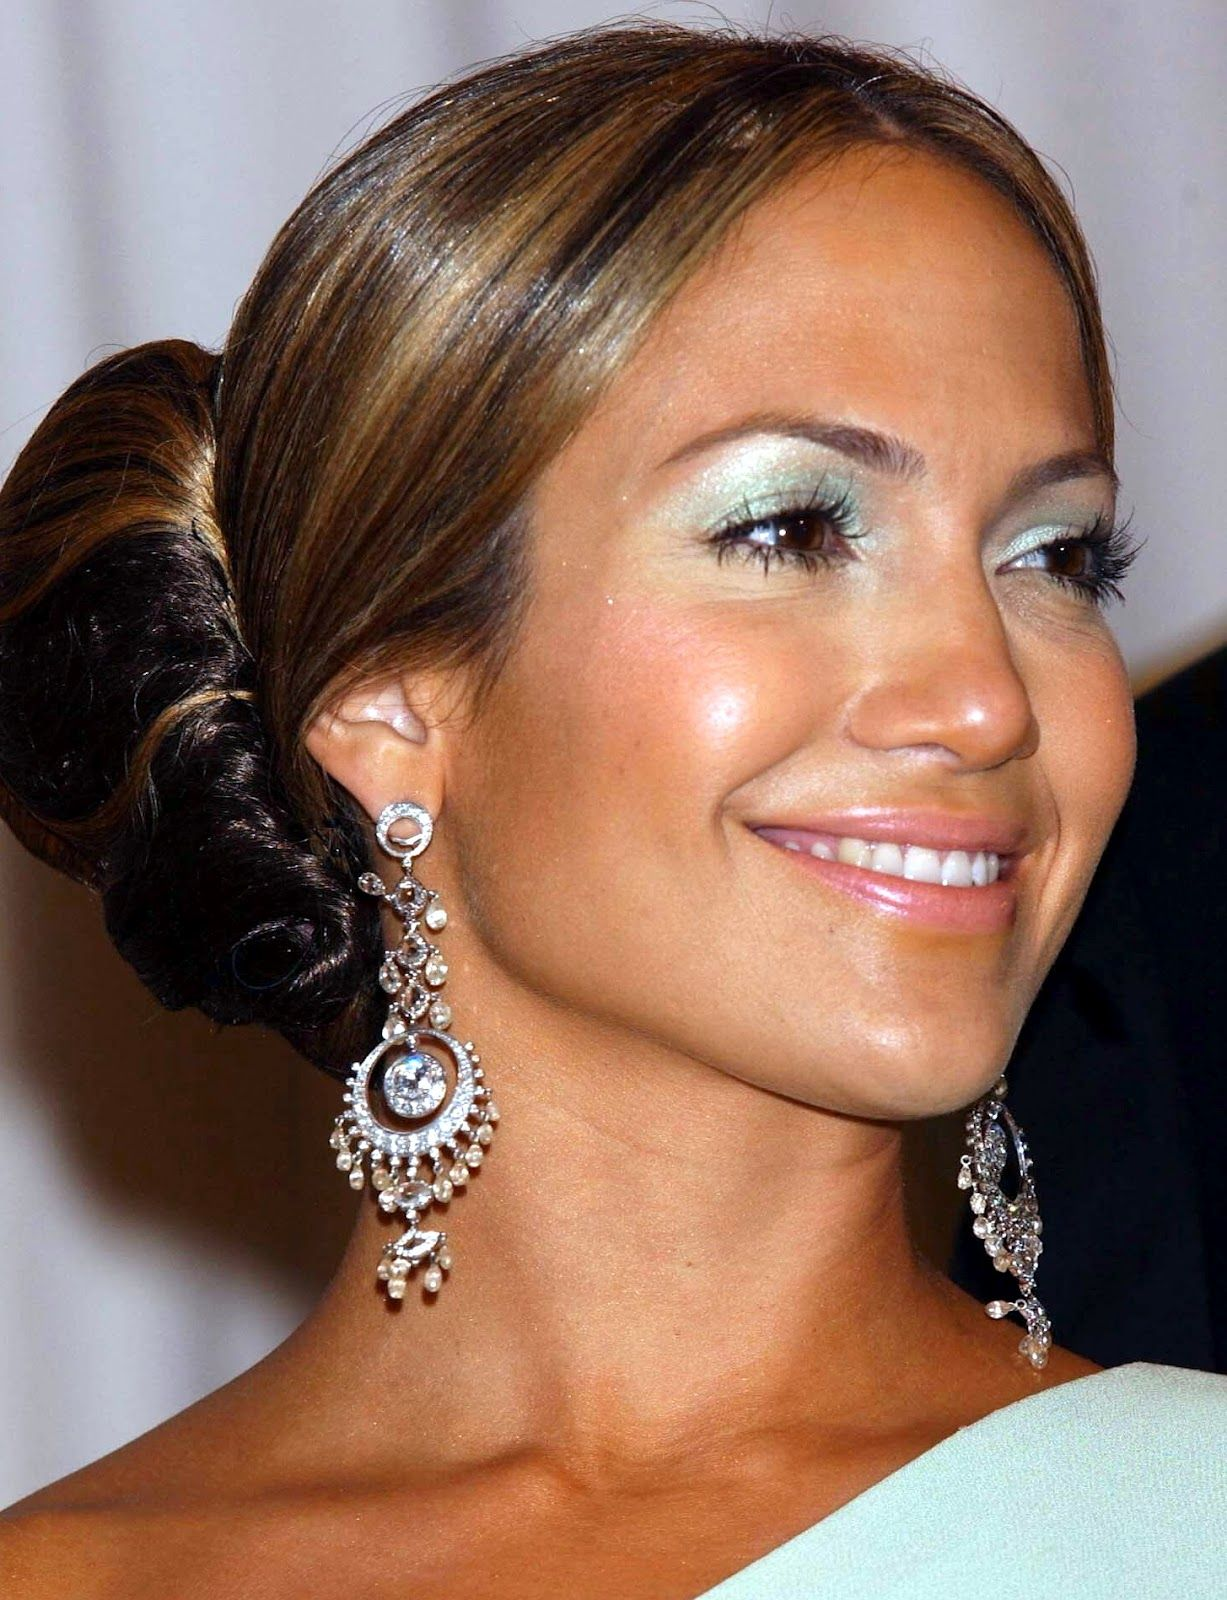 my ultimate beauty crush jennifer lopez Hair DID